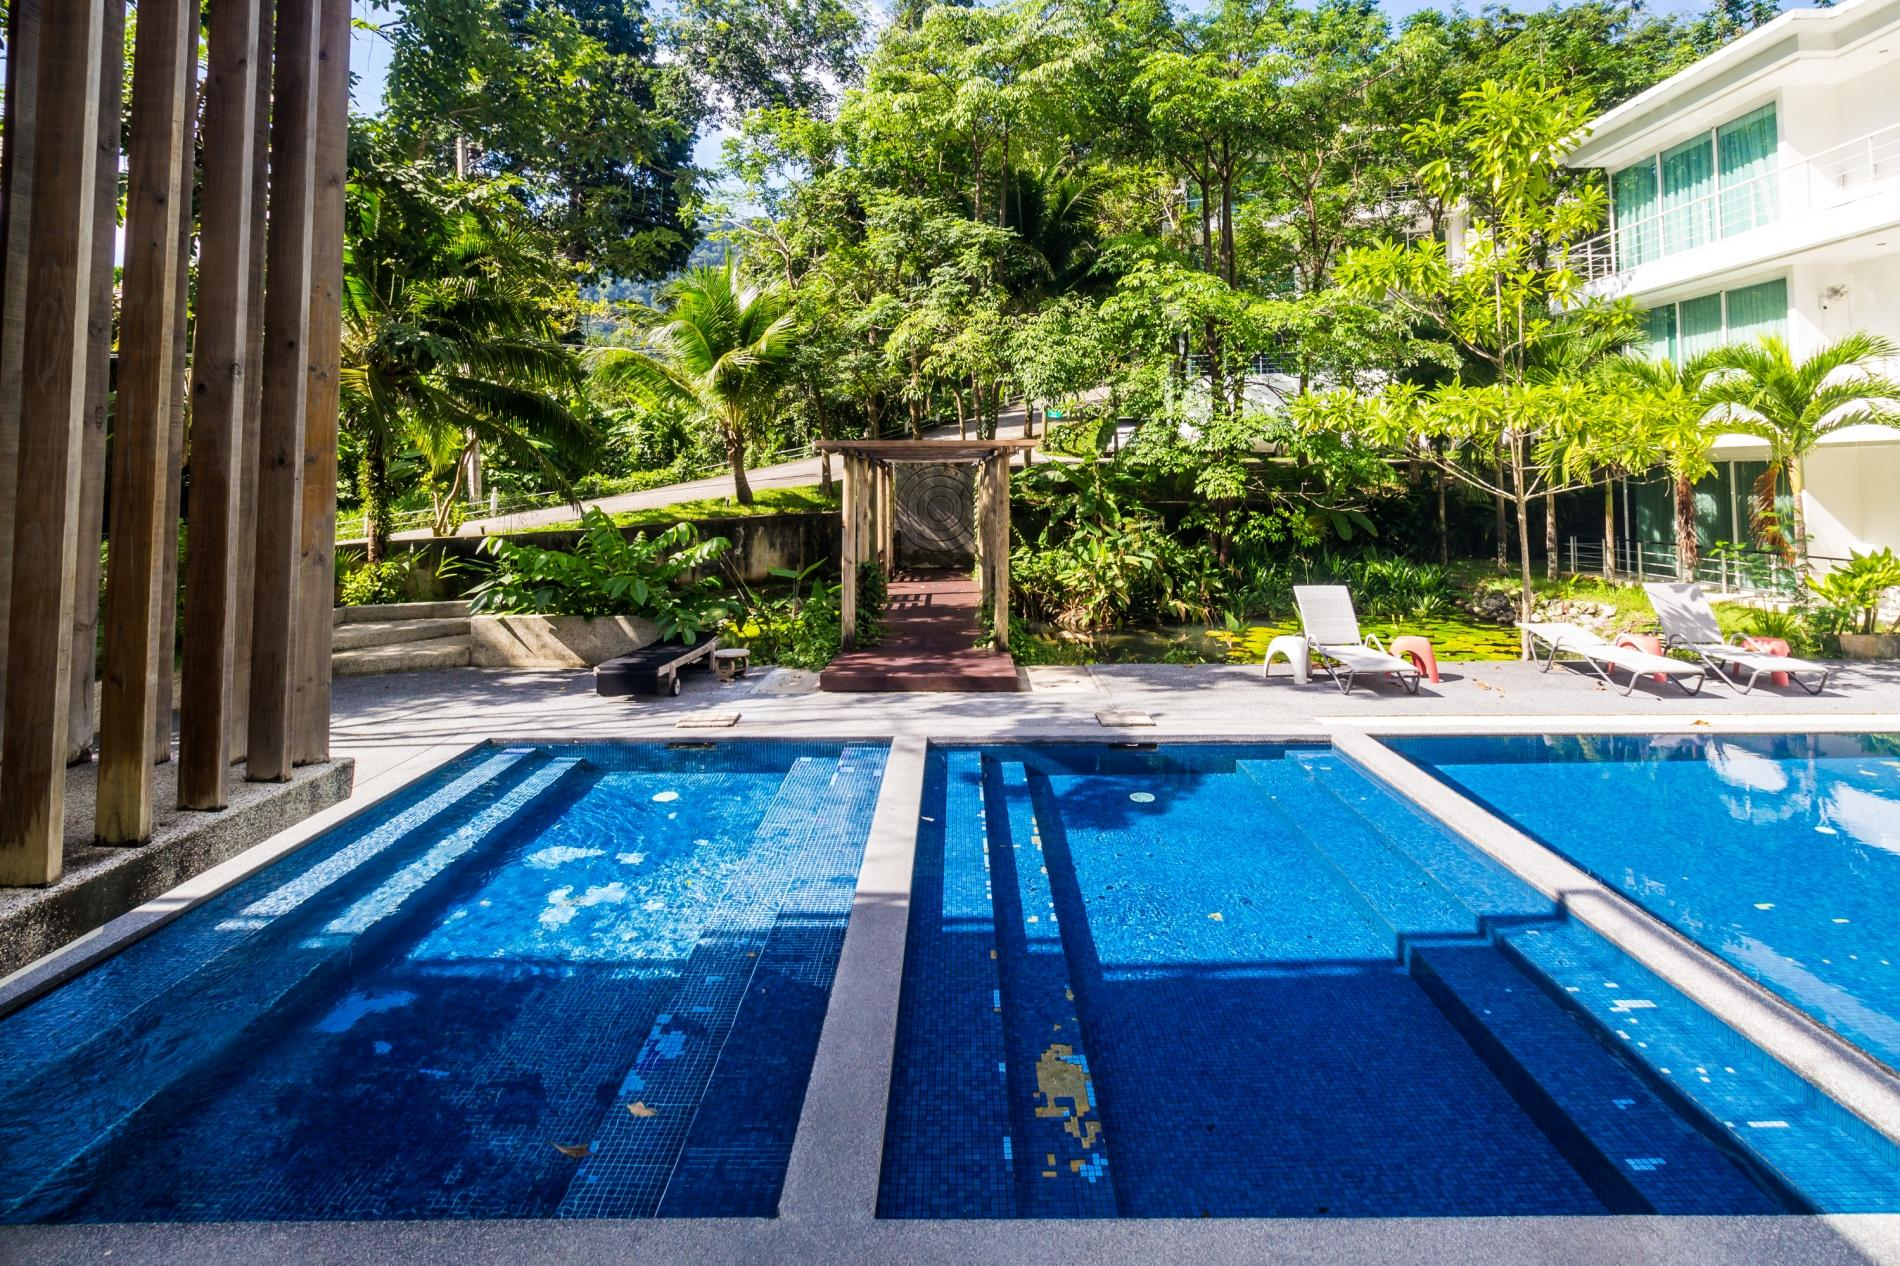 Apartment Zen Space 412 - Family holiday with pools  children area  gym and free shuttle to beach  photo 16936383